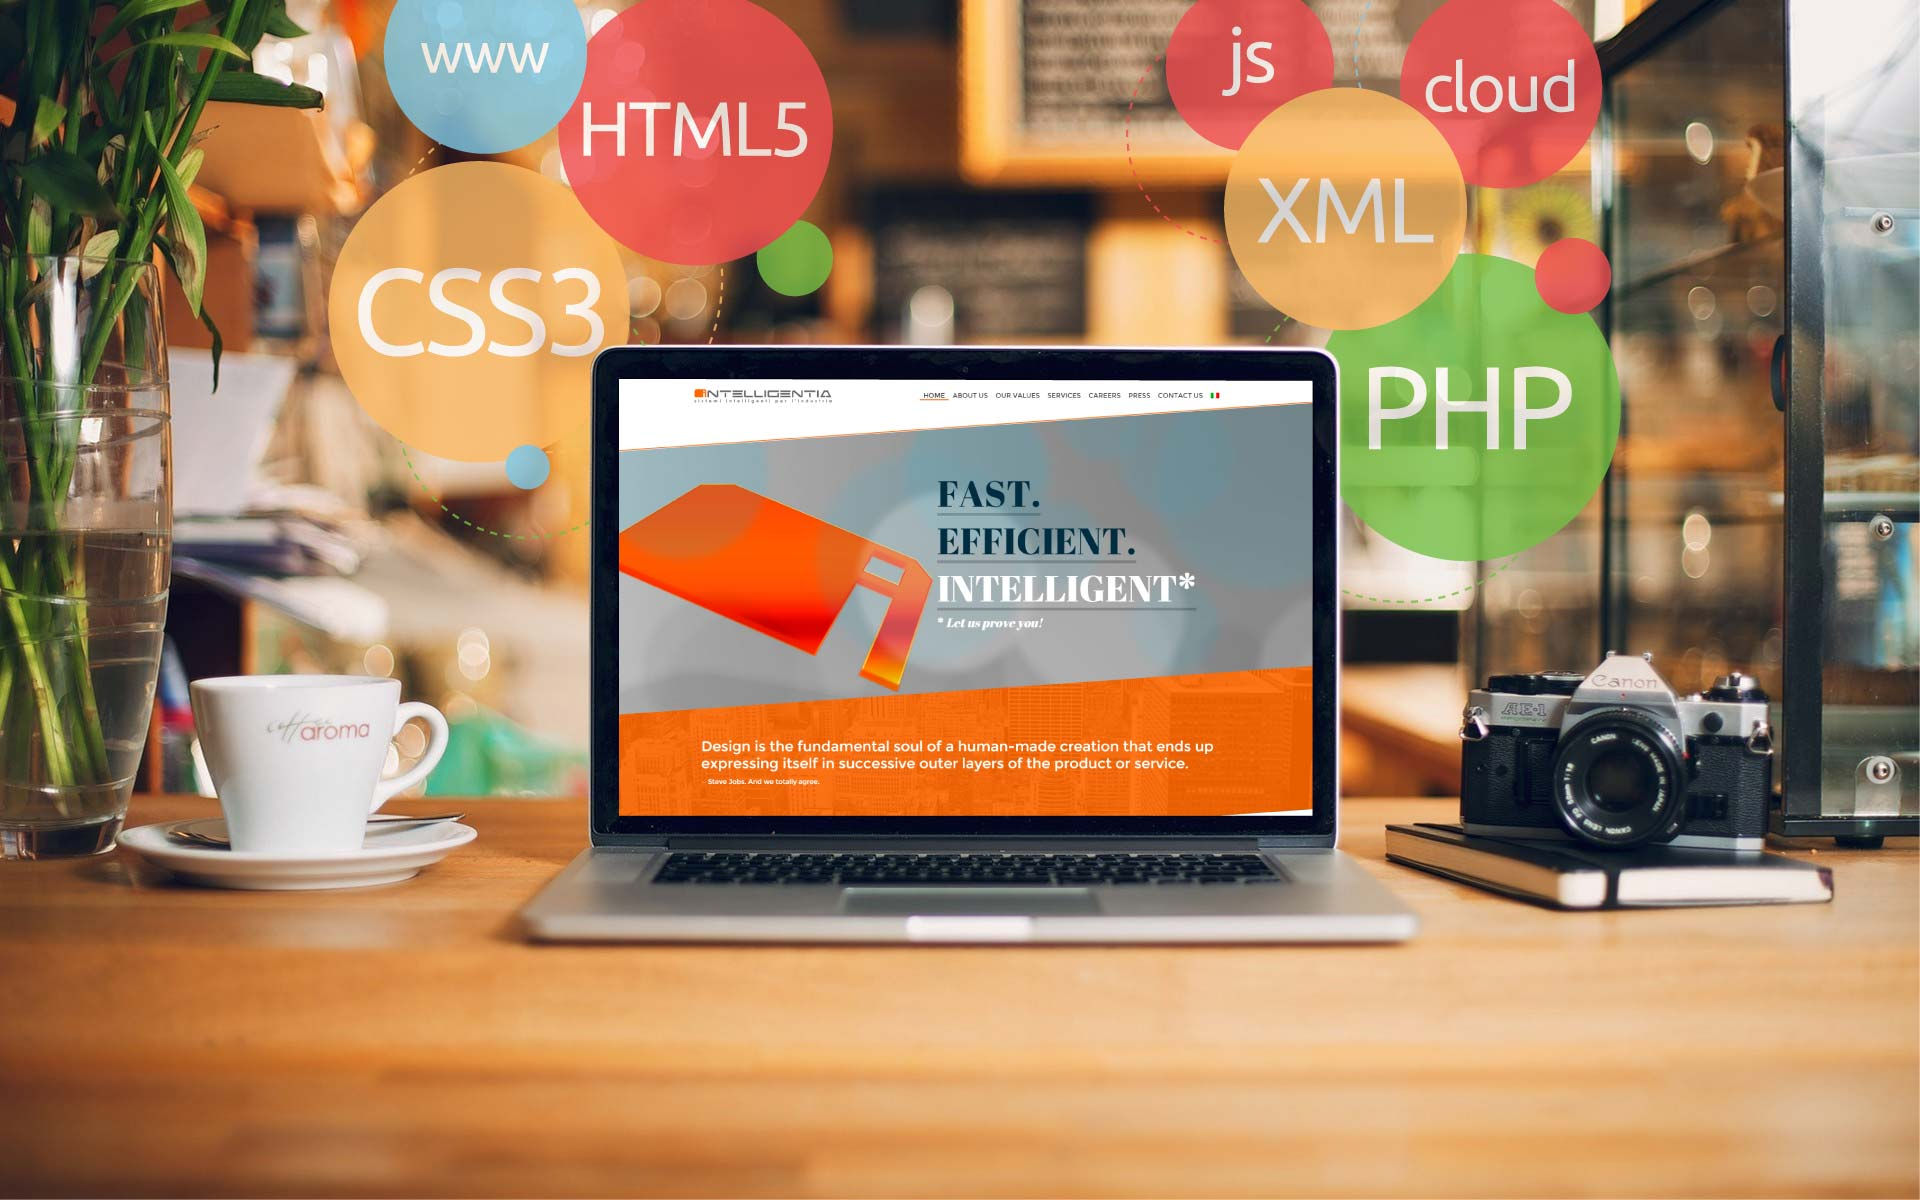 Web Applications Services - How To Use